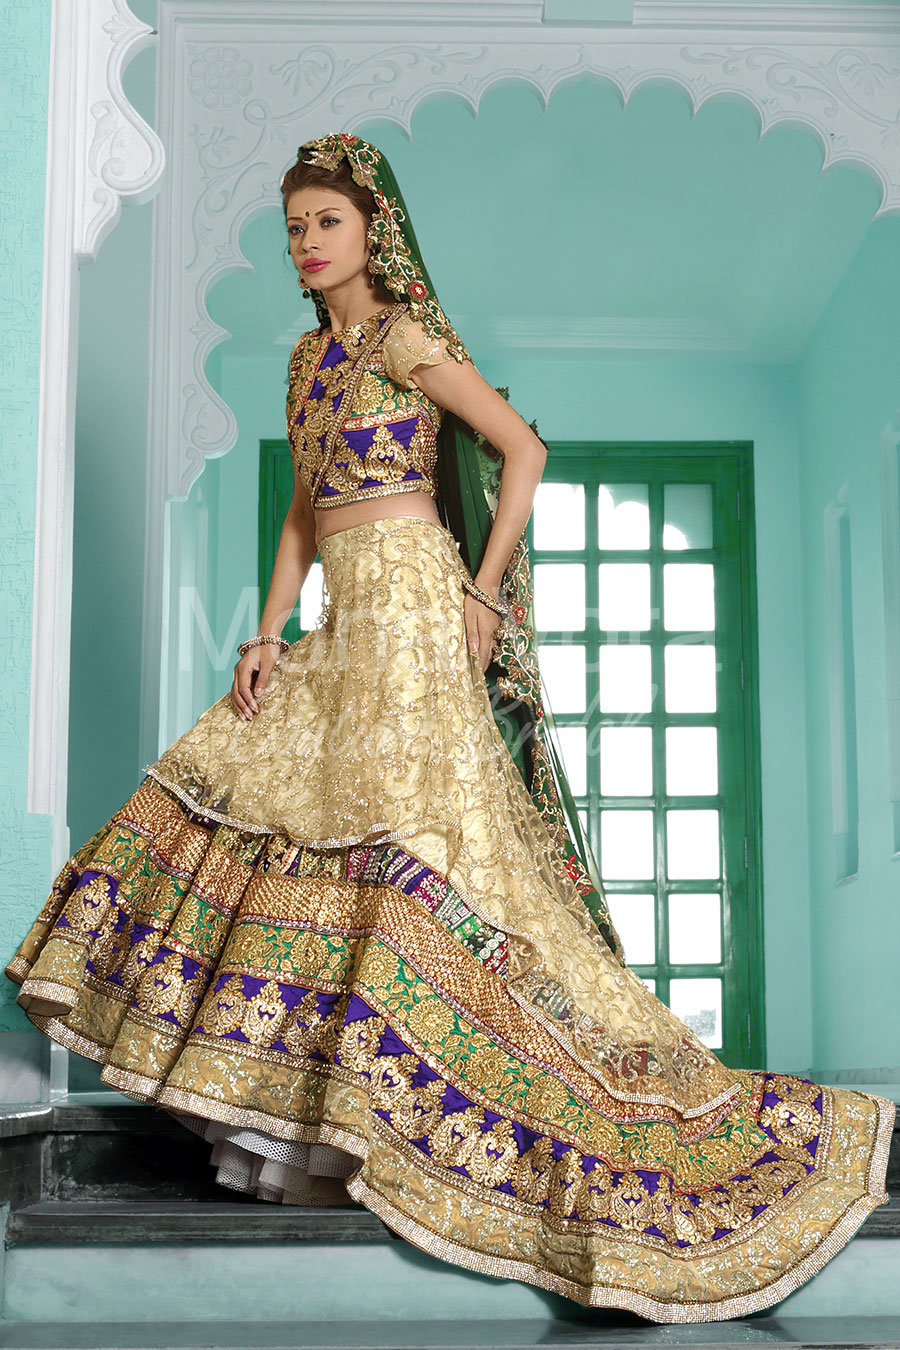 Bridal Wear- Lehenga Cholis, Anarkali Suit, Floor-Length Gowns ...